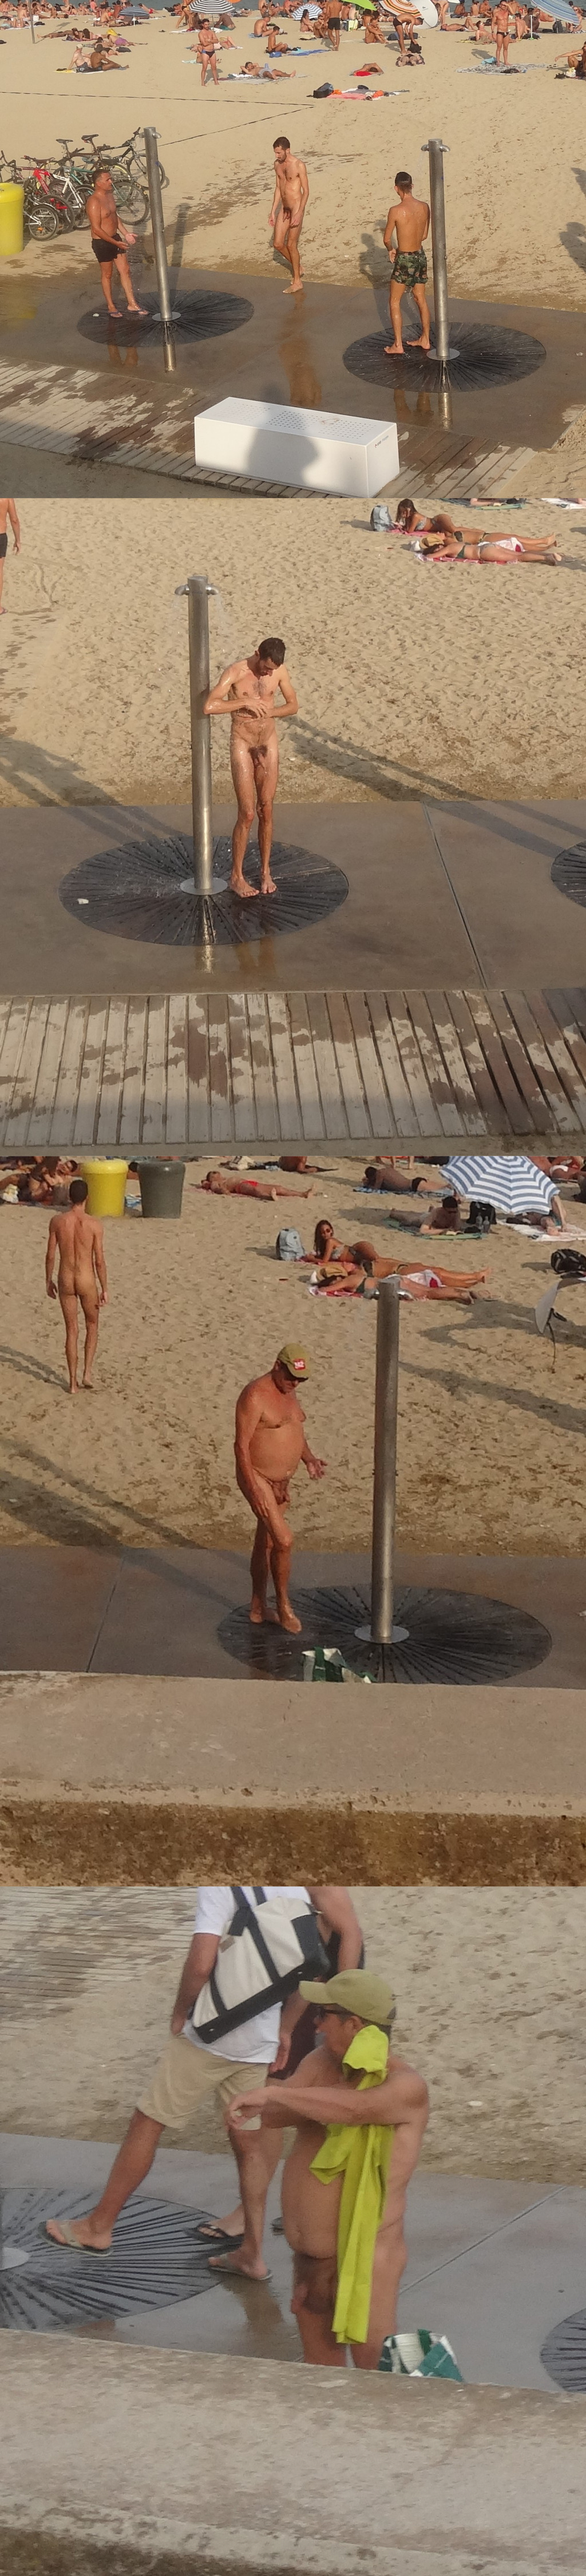 nudist guys taking a shower at the beach